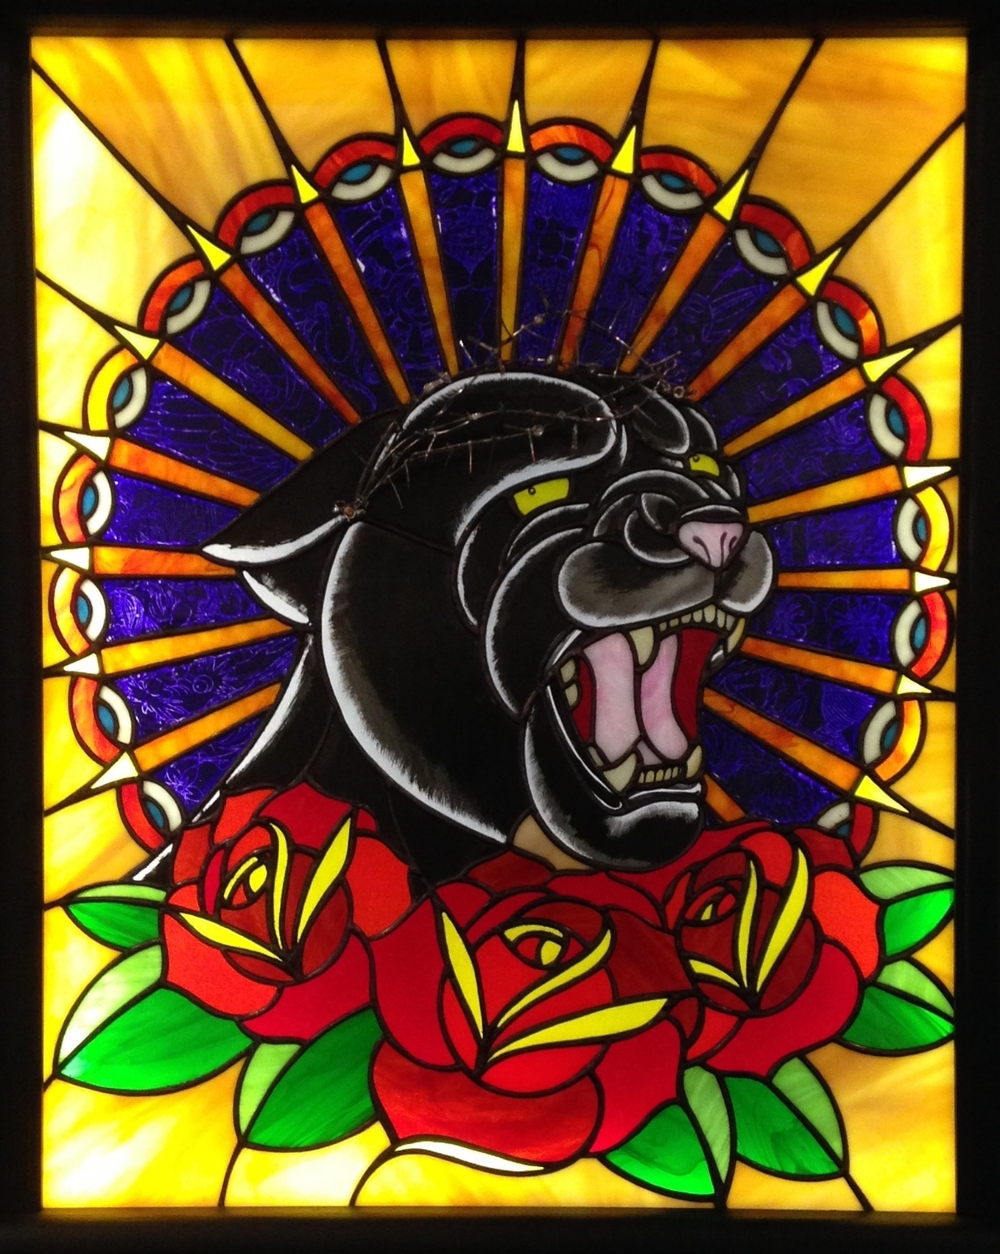 """PANZERCHRIST"" 23""X29"" (SIZE OF GLASS ONLY) Foiled stained glass, kiln fired glass paint, Thermofax stencils, LED lights, tattoo needles $3250"